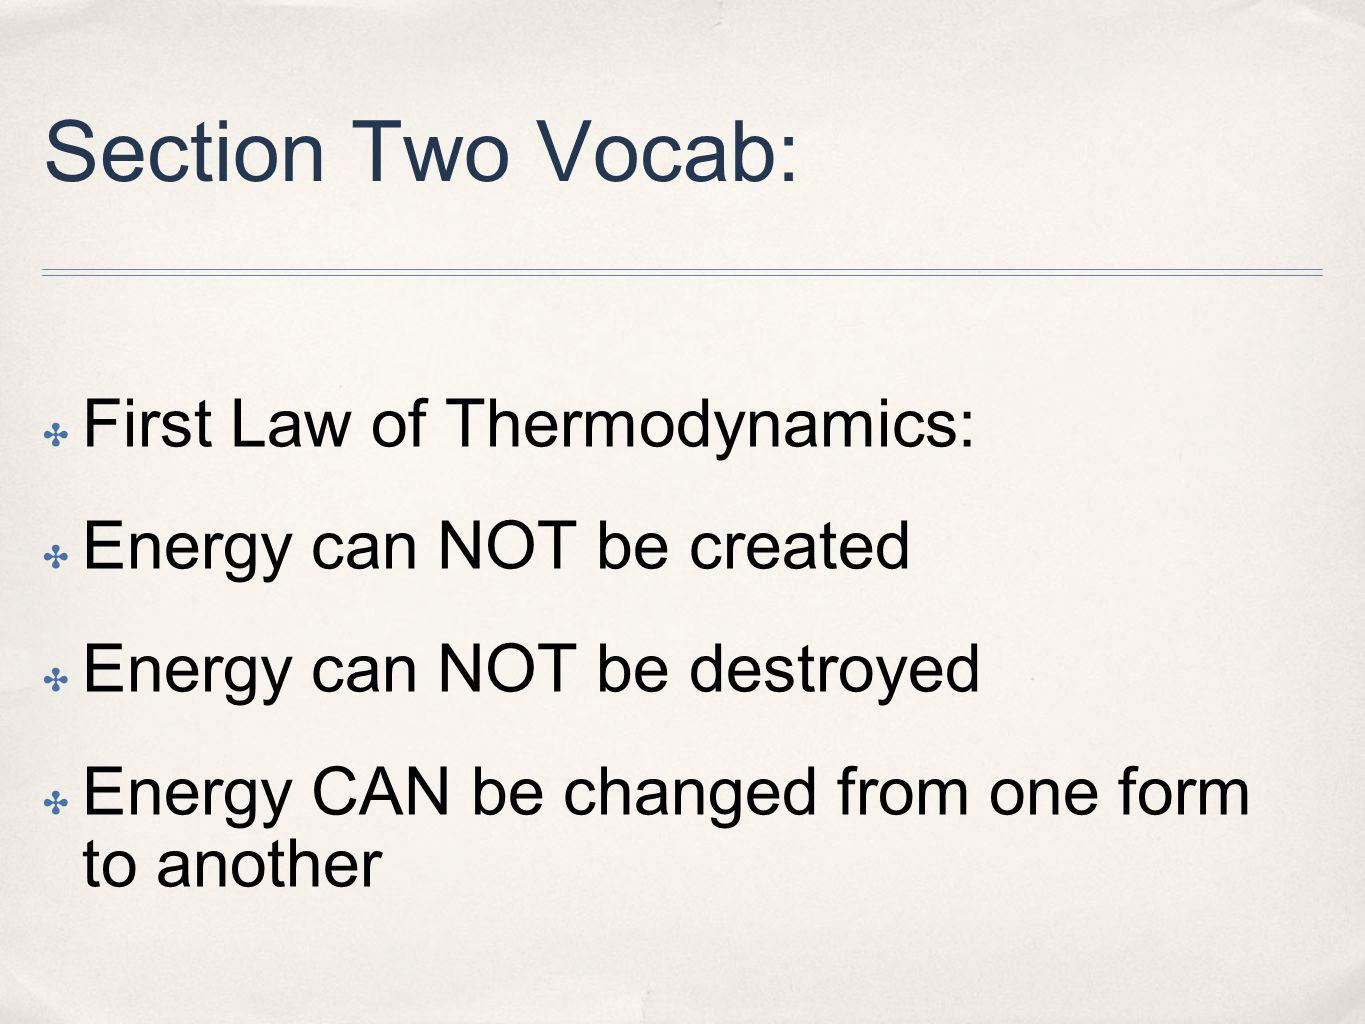 Section Two Vocab: First Law of Thermodynamics: Energy can NOT be created Energy can NOT be destroyed Energy CAN be changed from one form to another